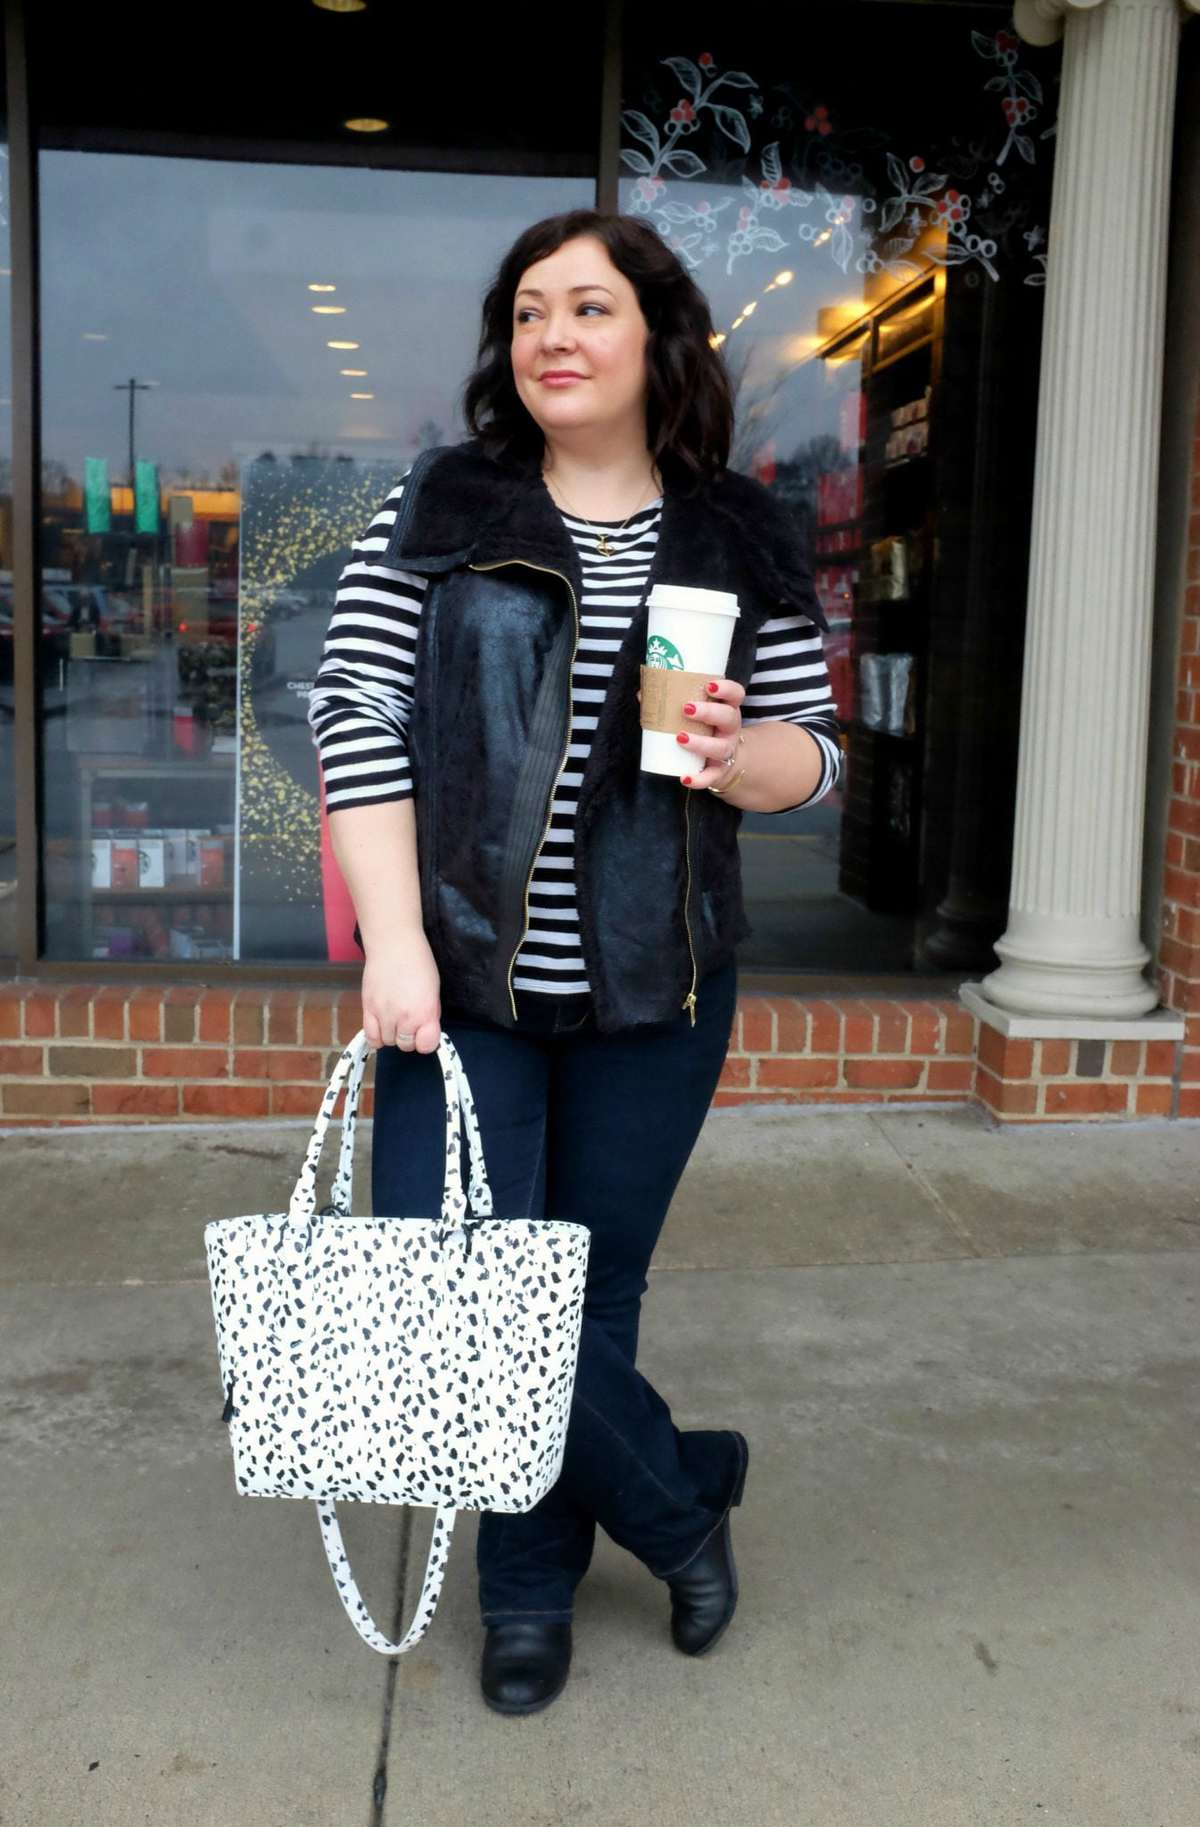 Wardrobe Oxygen wearing a Modamix vest from Gwynnie Bee, JAG Jeans Foster Bootcut, and Dagne Dover limited edition Mini Tote in leather